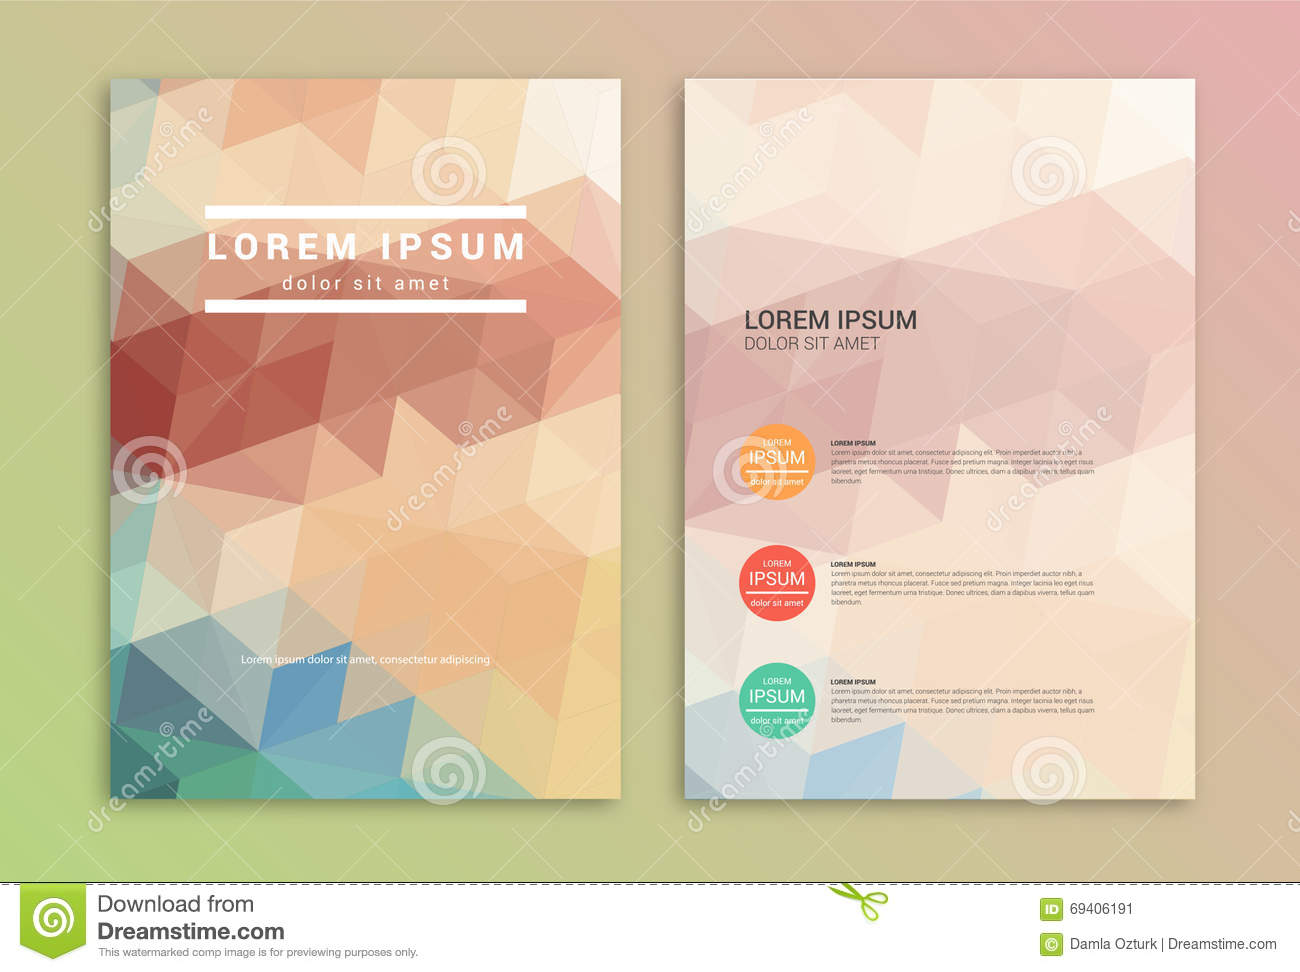 Templates for professional poster